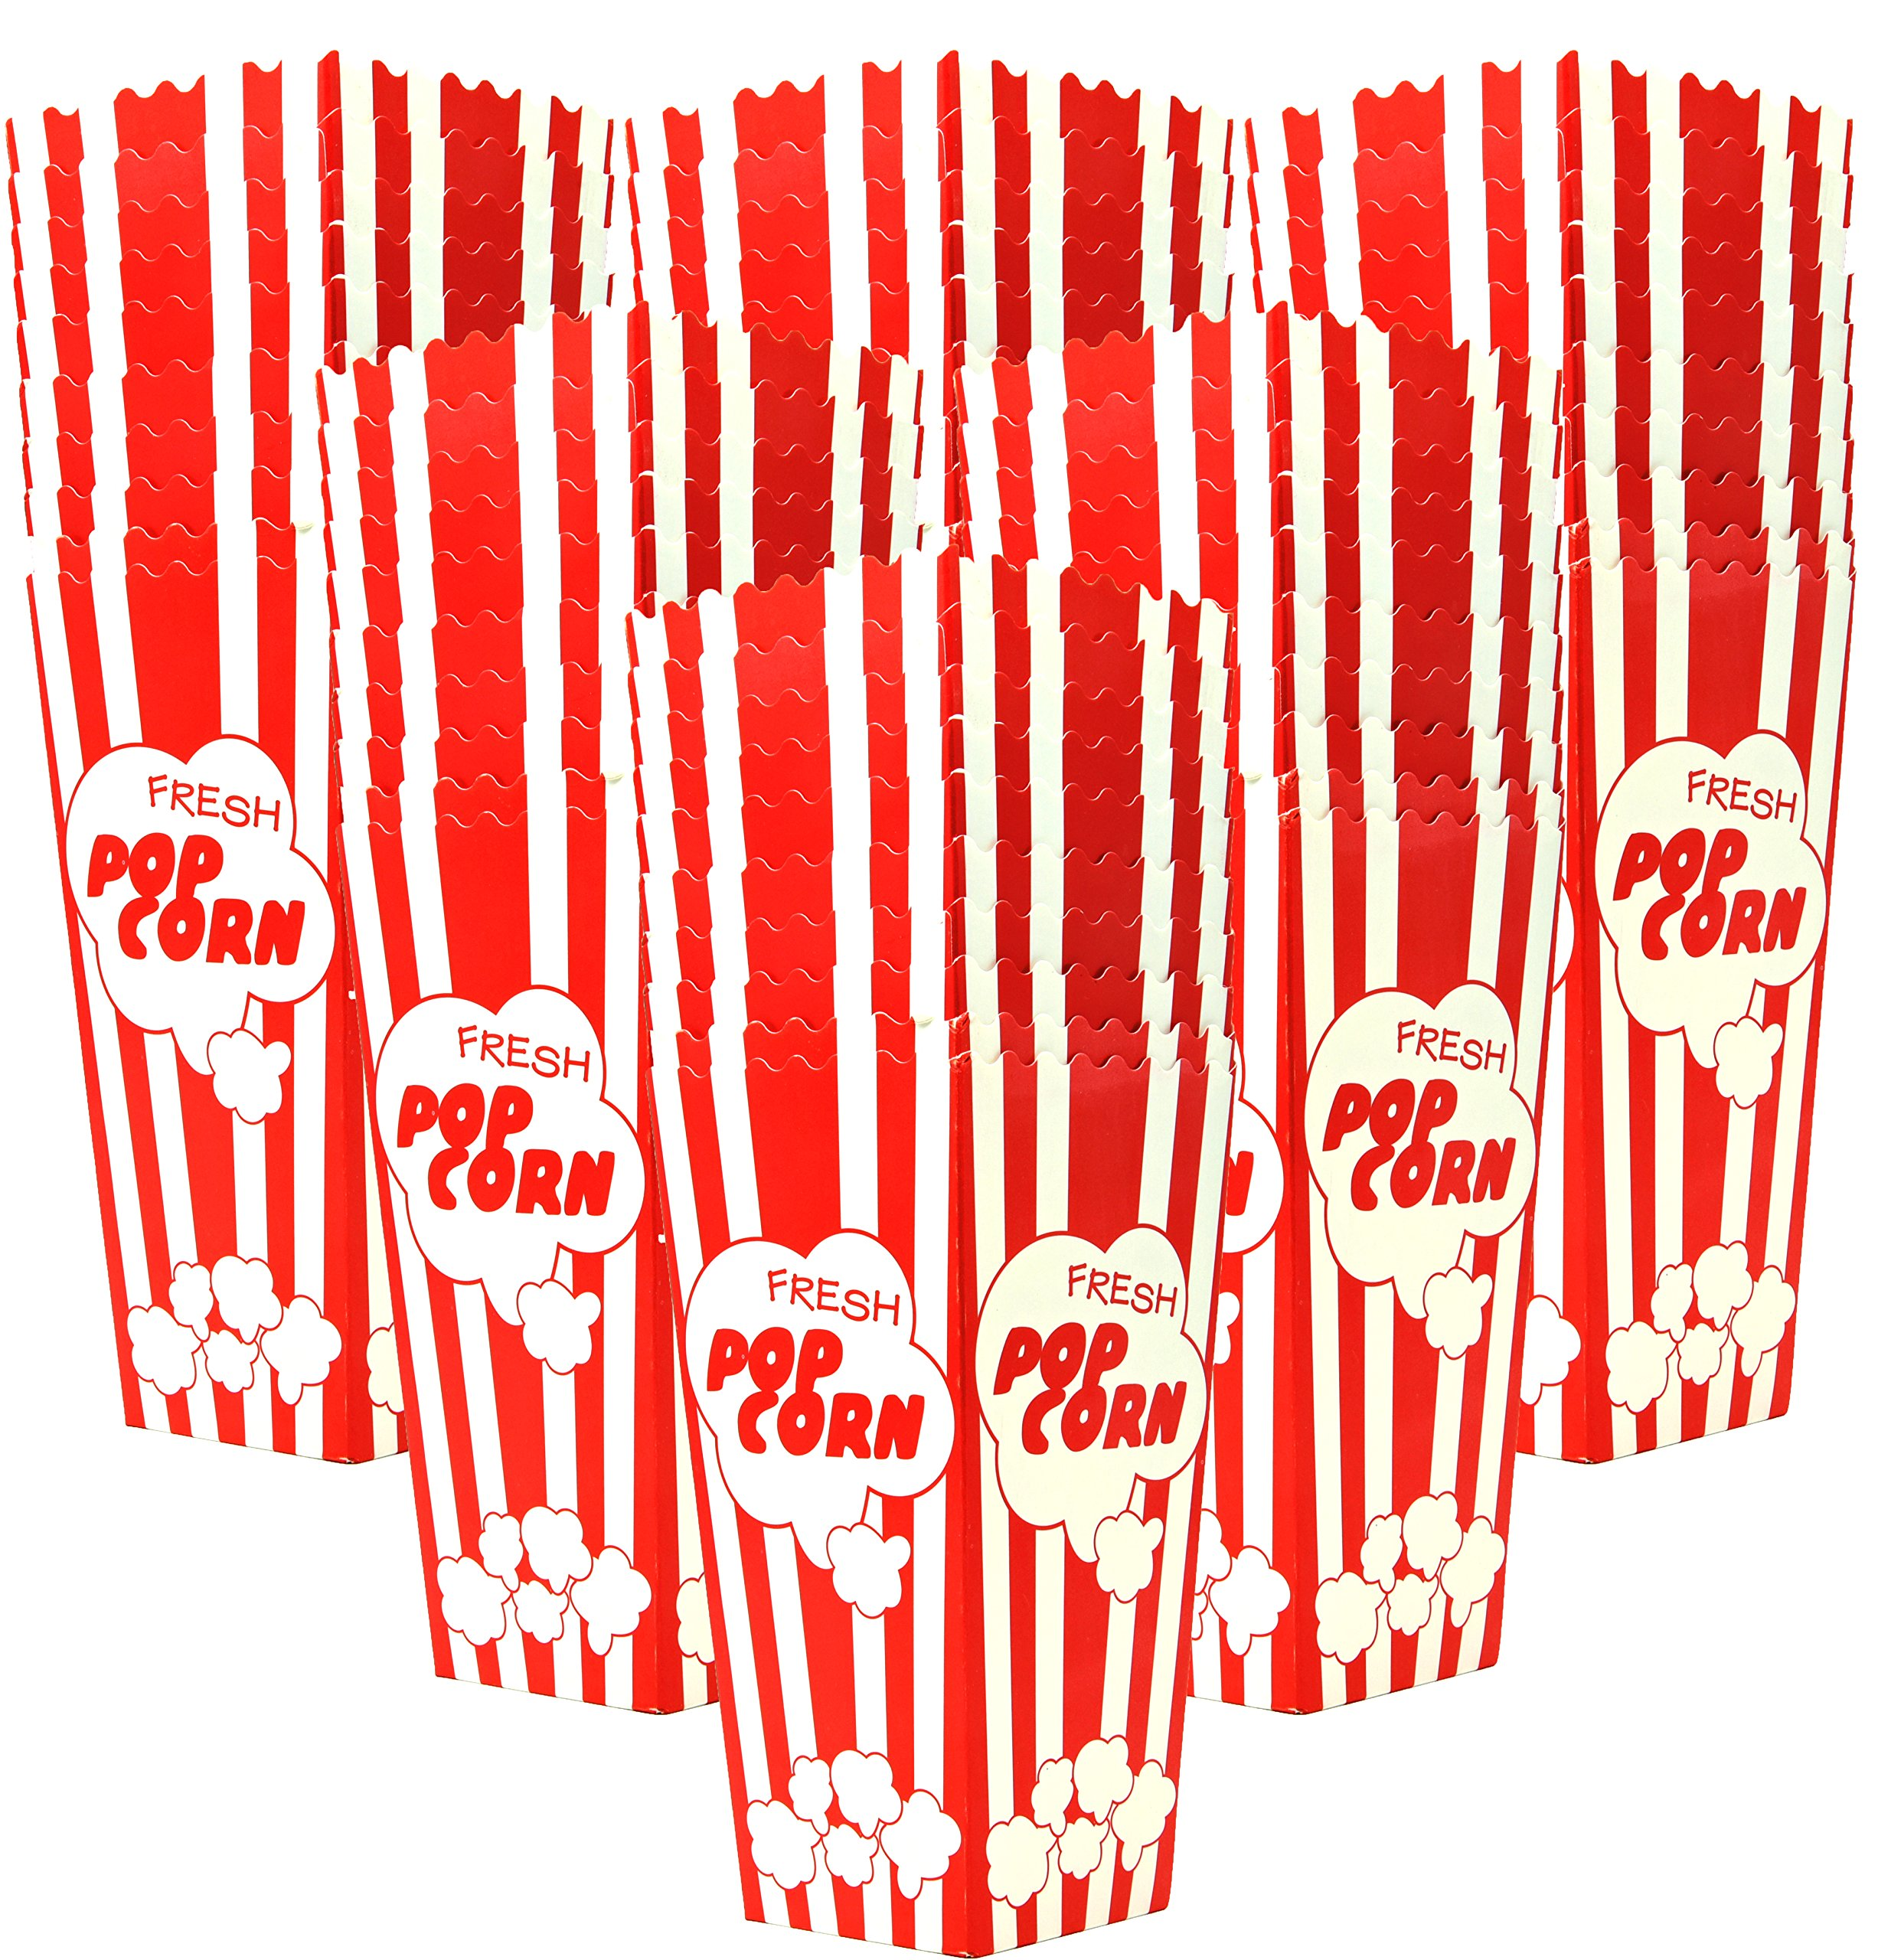 60 Individual Disposable Popcorn Boxes with Old Fashion Vintage Retro Design with Red and White Colored, Nostalgic Carnival Stripes, A Huge 7.75'' Inches Tall and Hold 46 Oz. by Original Salbree by Salbree (Image #1)